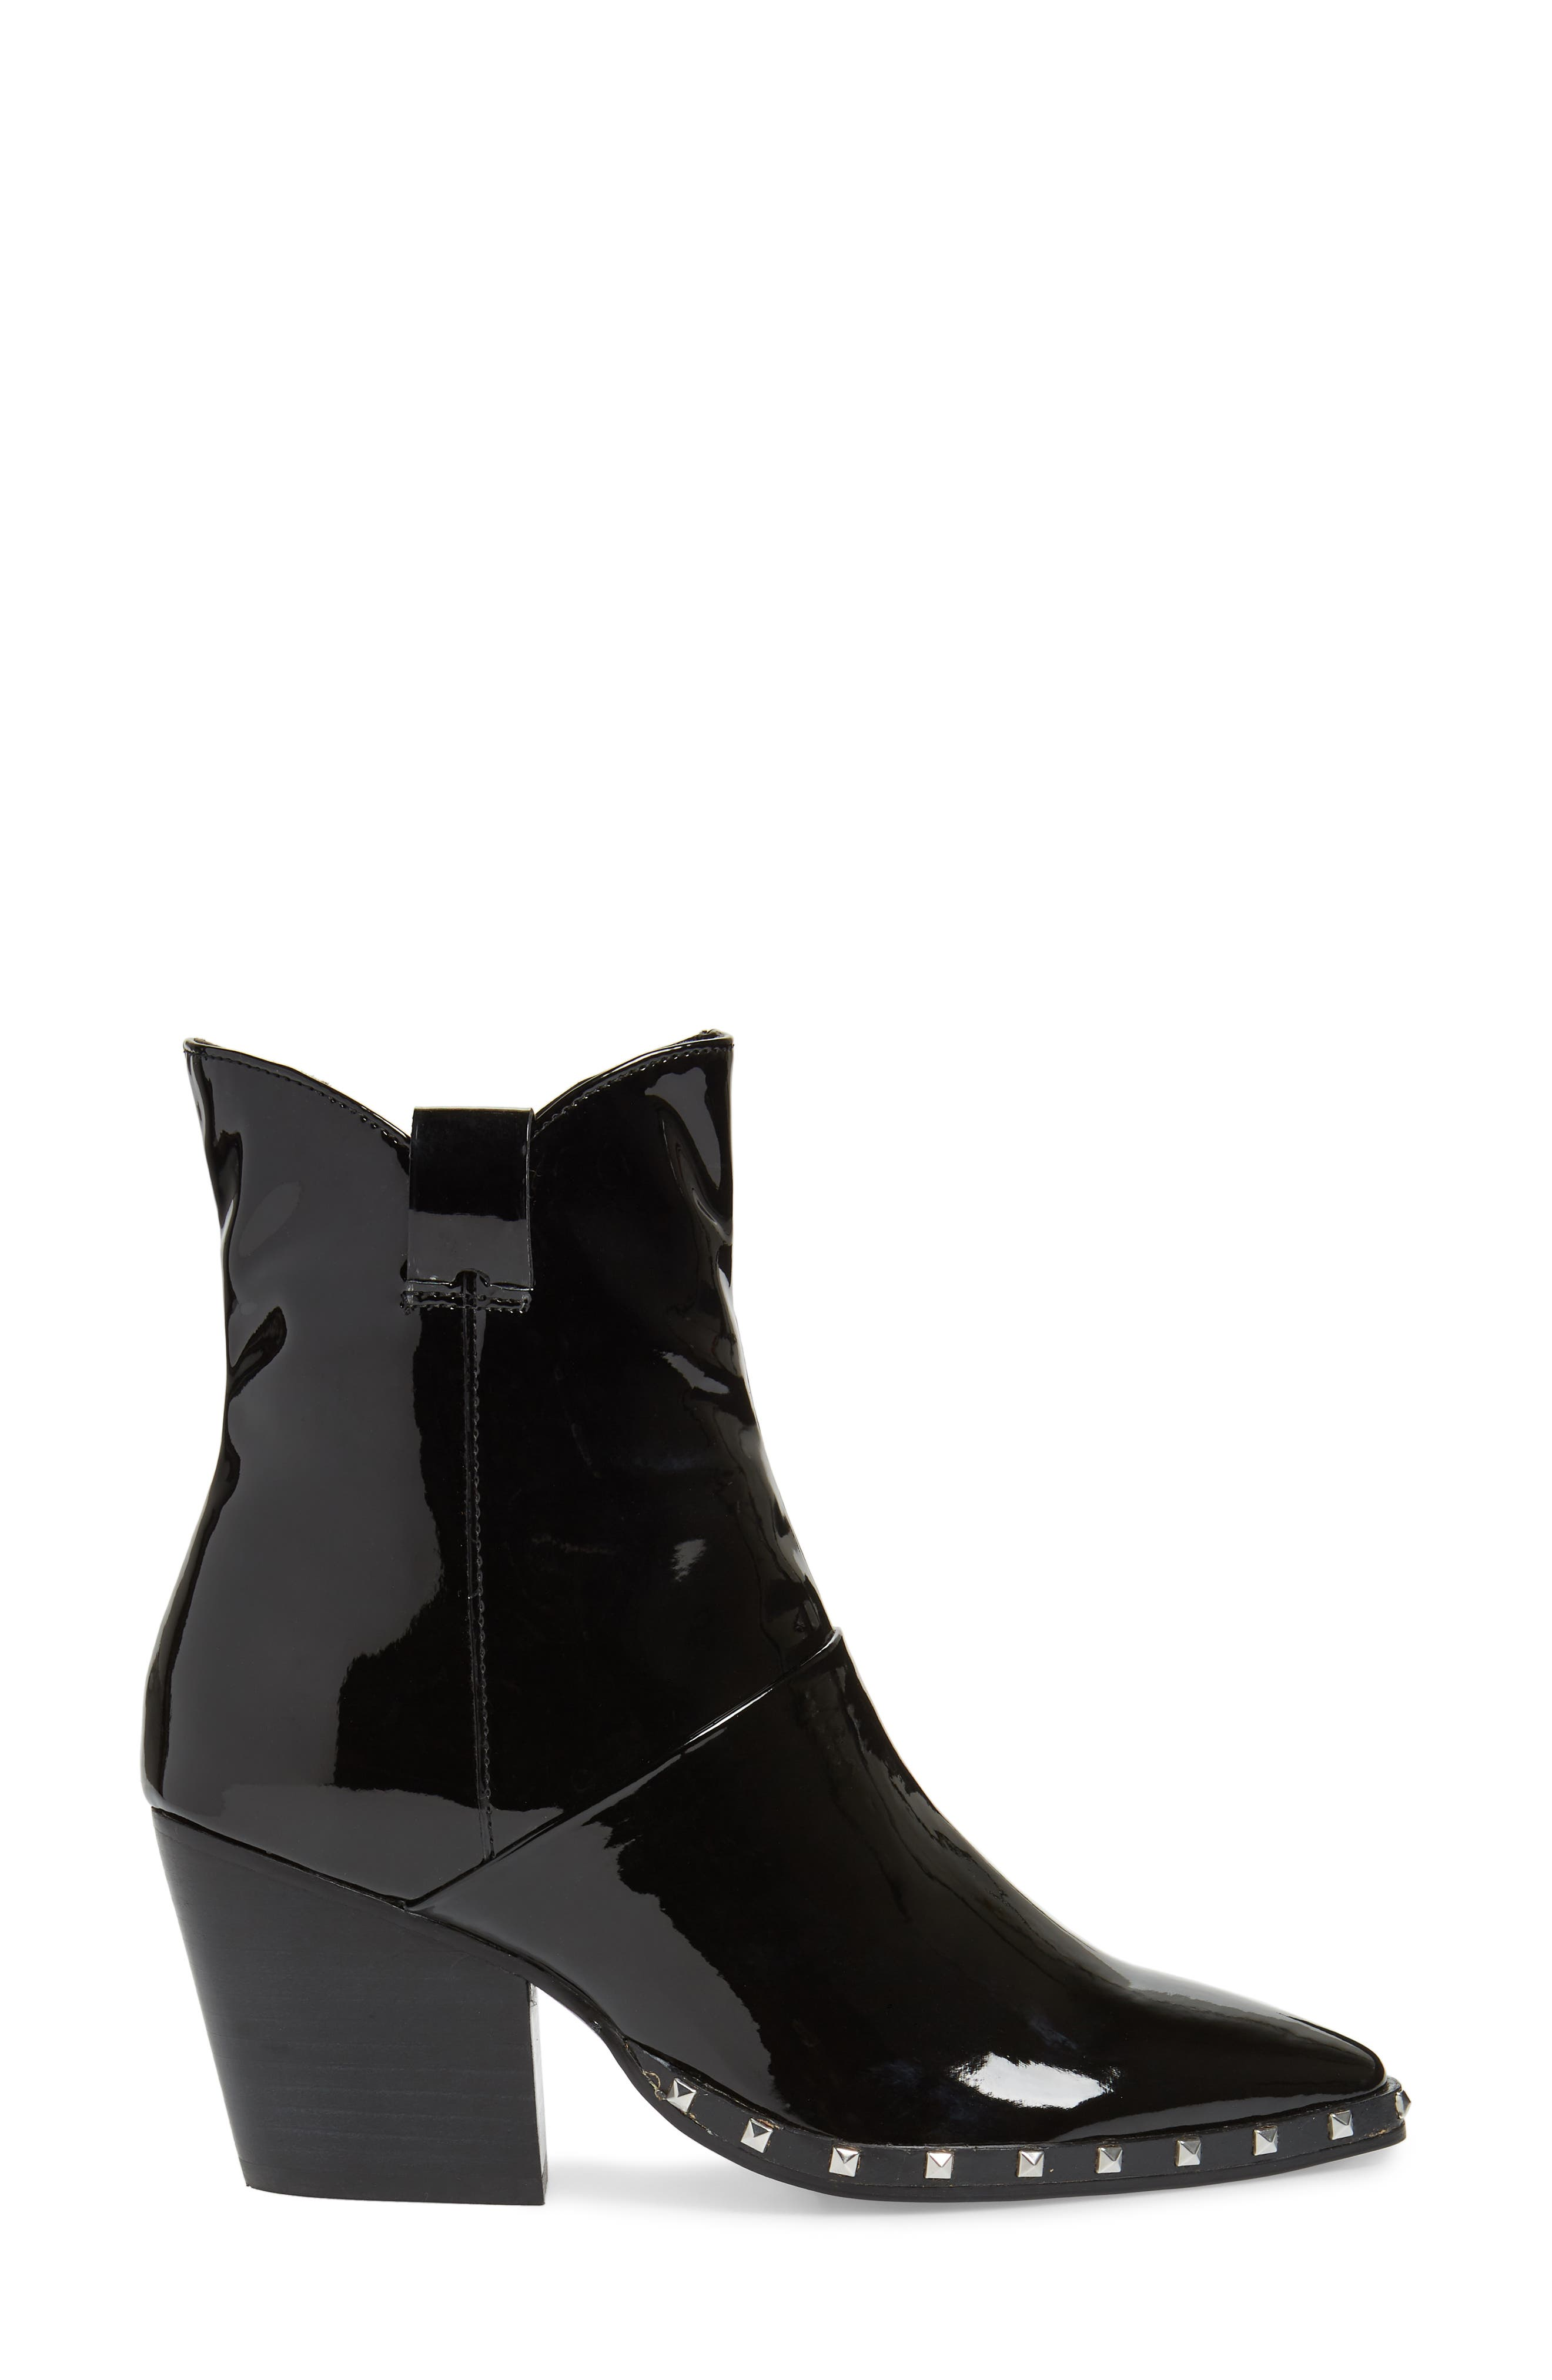 Haines Studded Bootie,                             Alternate thumbnail 3, color,                             MIDNIGHT PATENT LEATHER